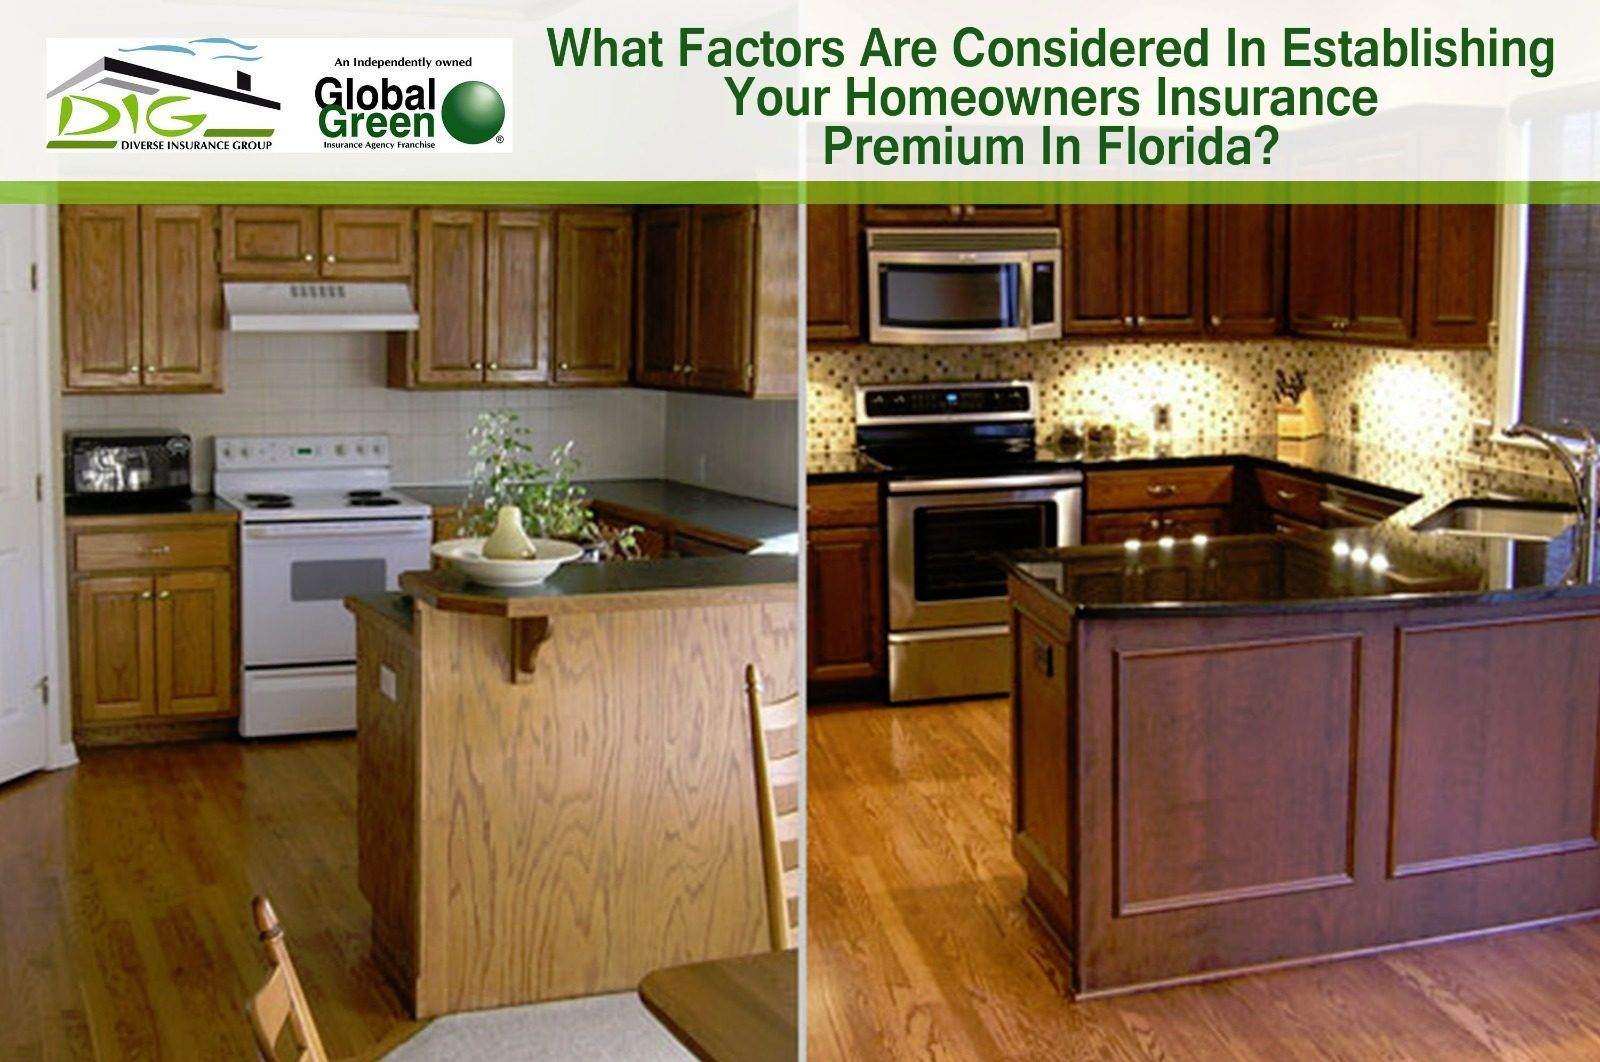 Pin By Alex Wat On What Factors Are Considered In Establishing Your Homeowners Insurance Premium In Florida Glazed Kitchen Cabinets Kitchen Cabinets Before And After Kitchen Remodel